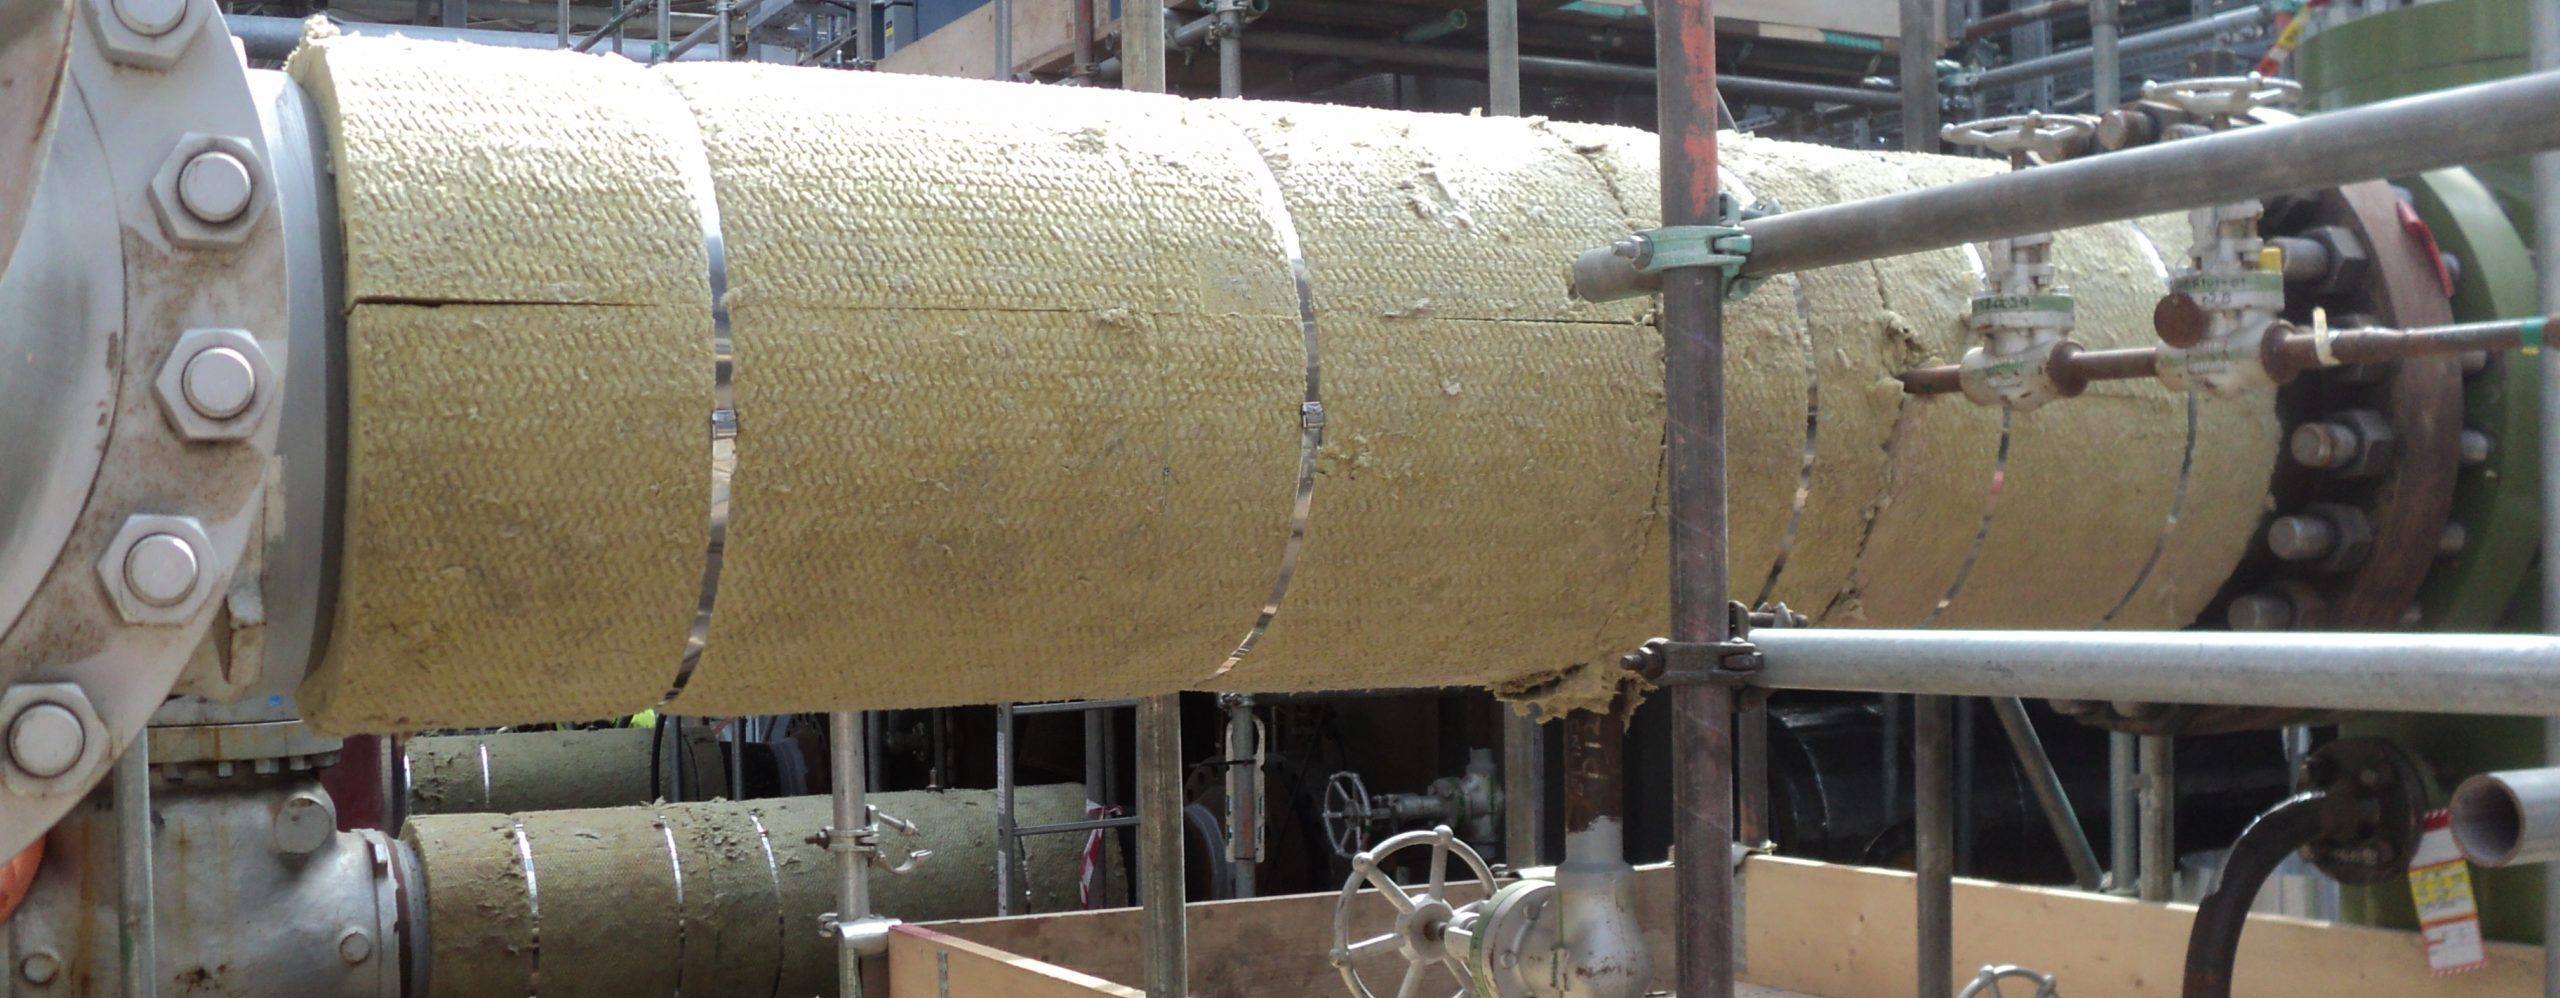 Thermal insulation piping ducting